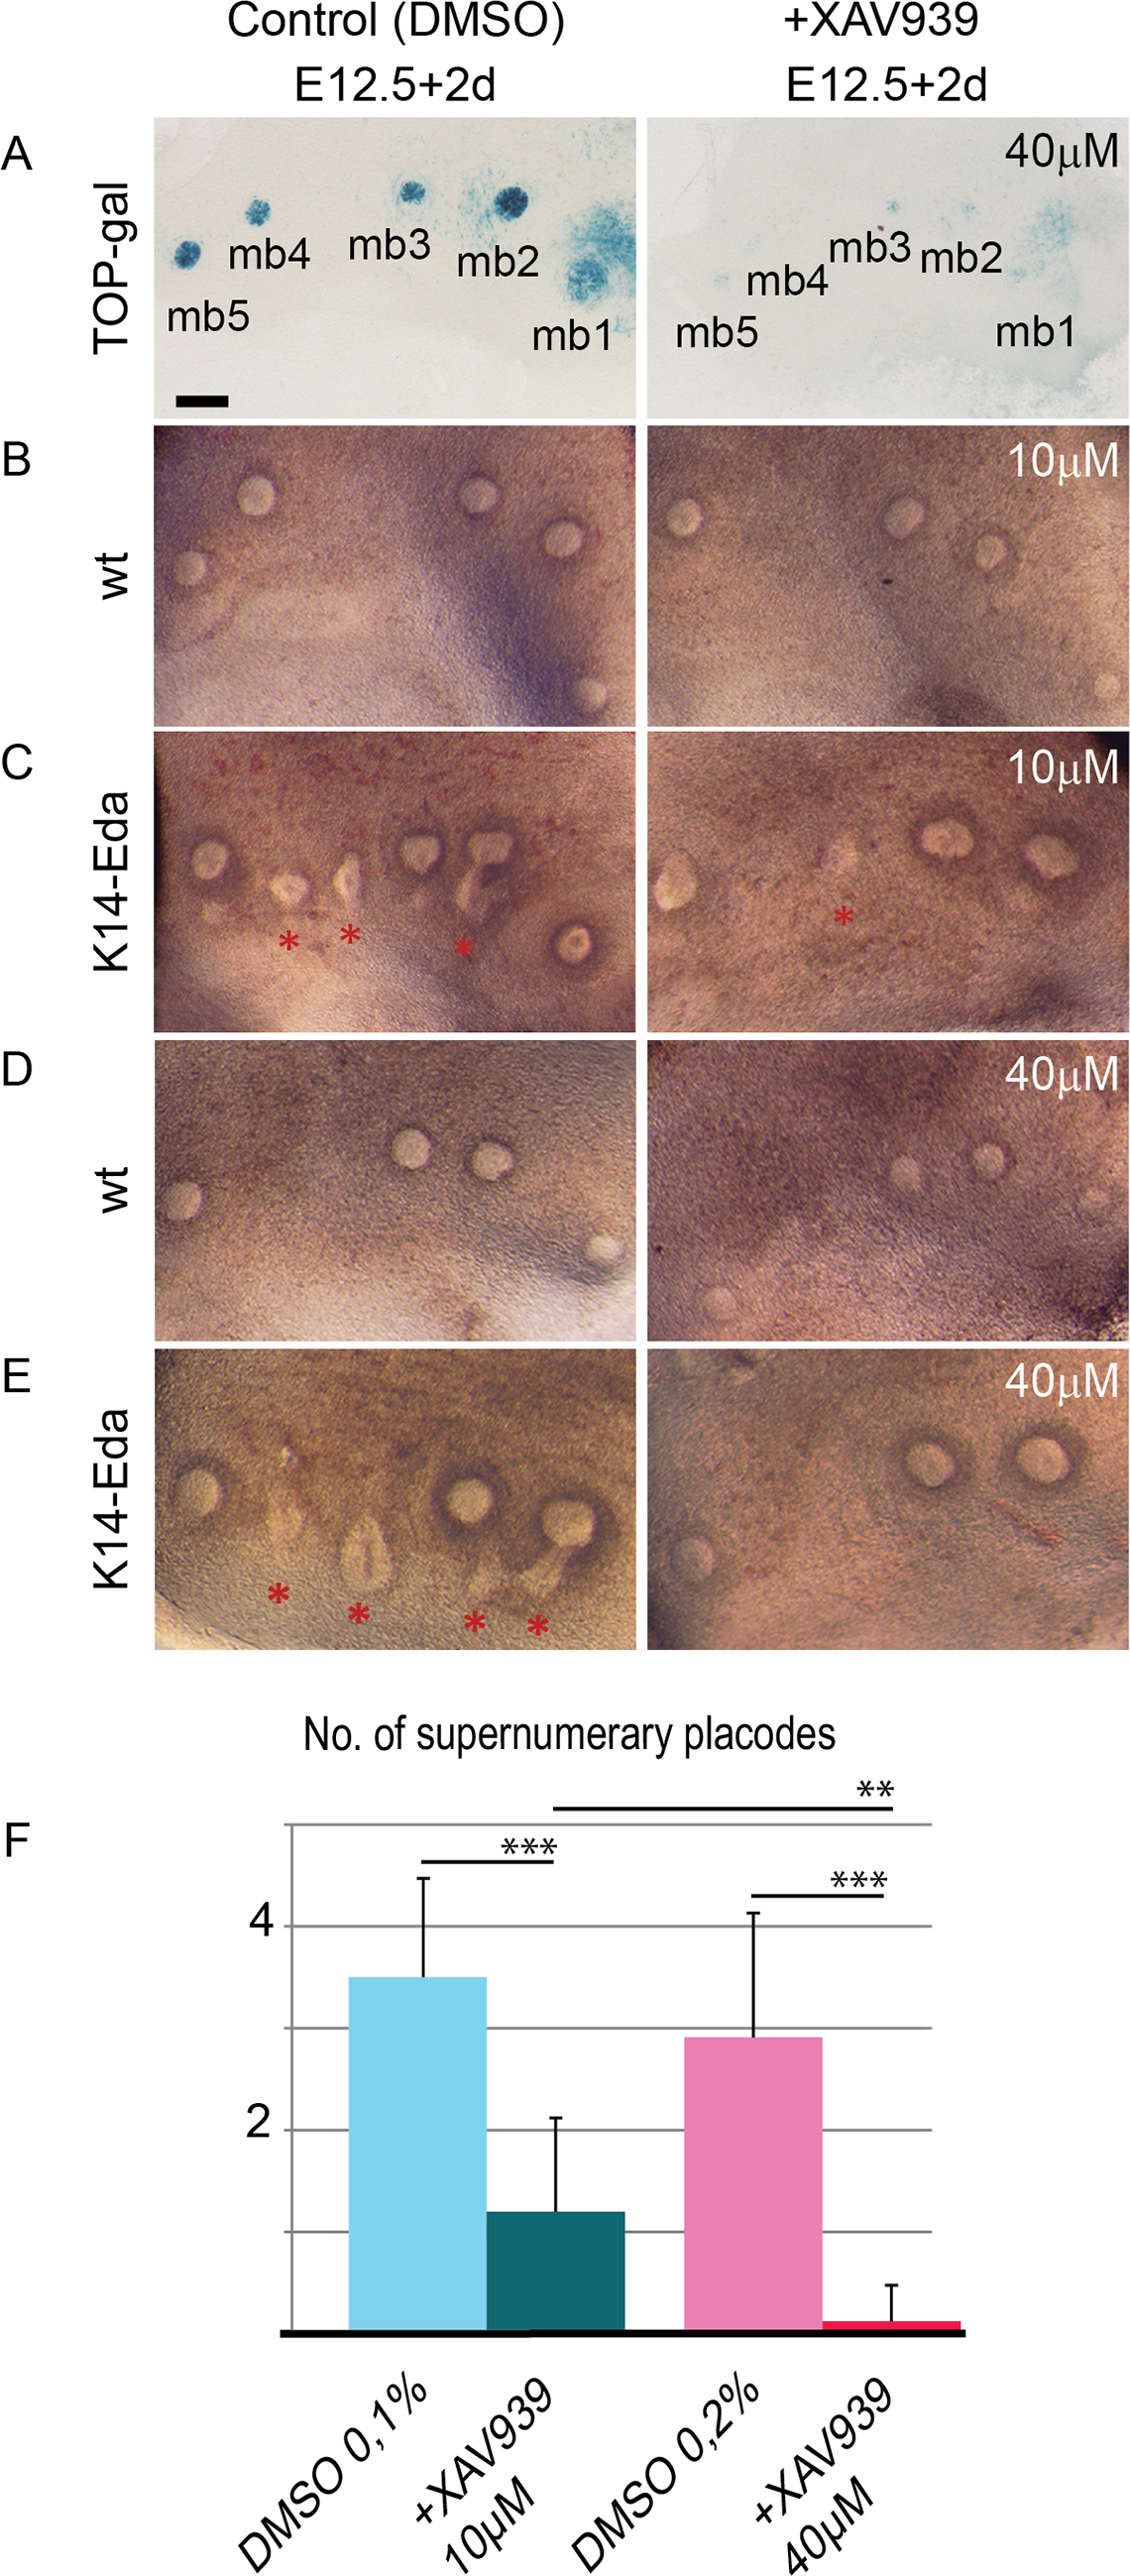 Inhibition of Wnt activity suppresses supernumerary mammary placode formation in a dose-dependent manner in <i>K14-Eda</i> tissue explants.